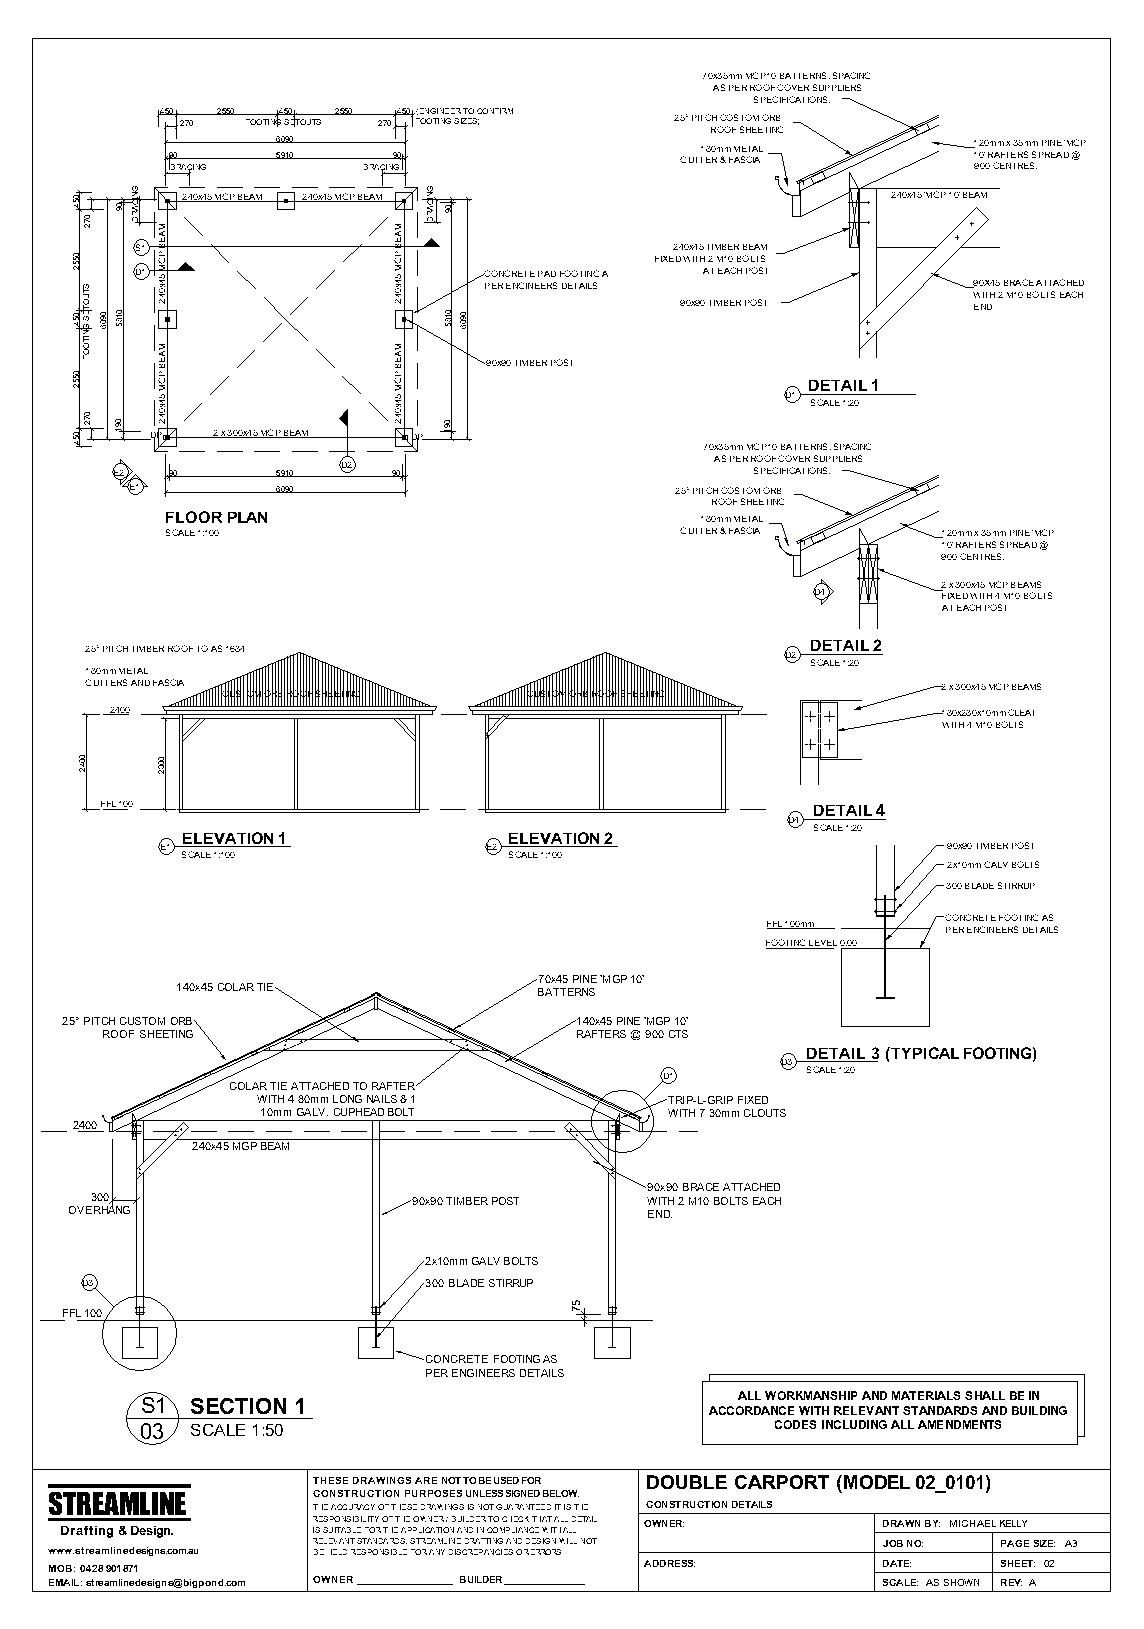 Download free carport plans building carport pinterest Free garage blueprints